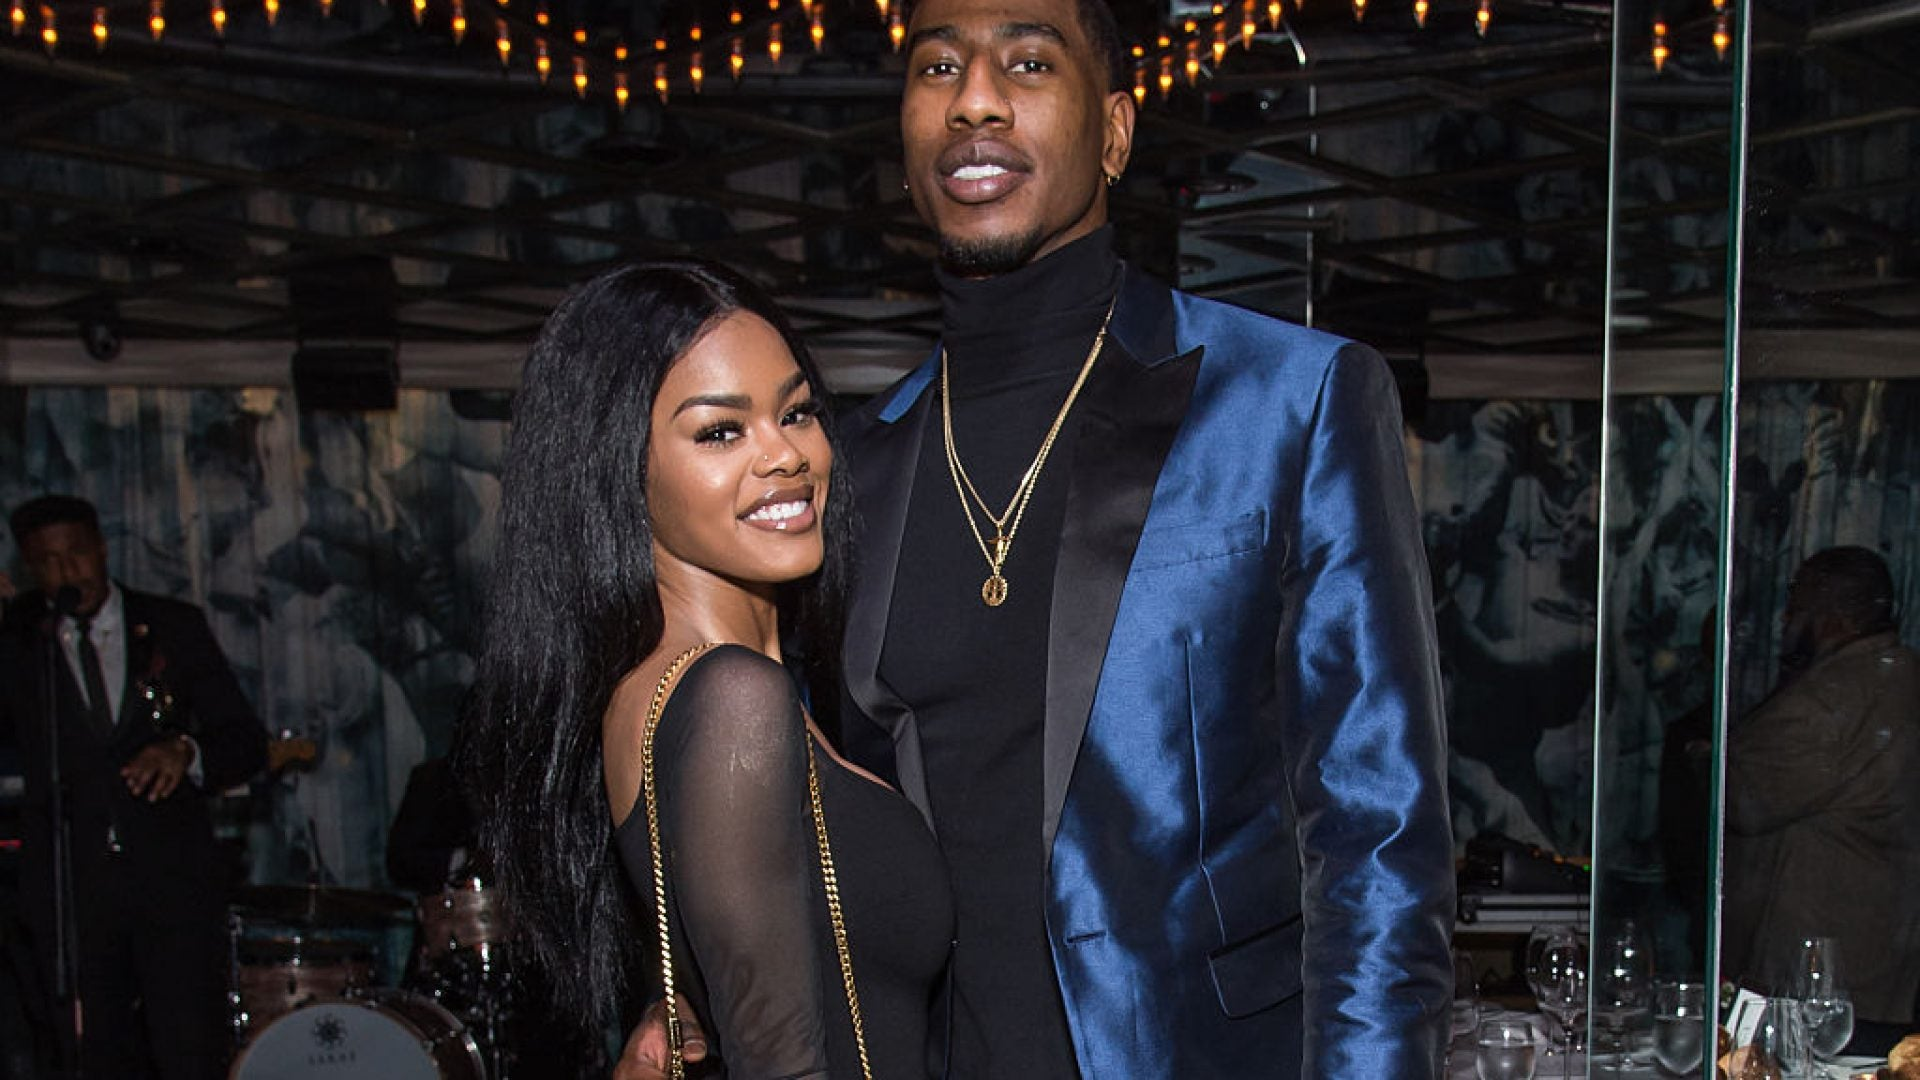 Teyana Taylor And Iman Shumpert Are Expecting Their Second Child